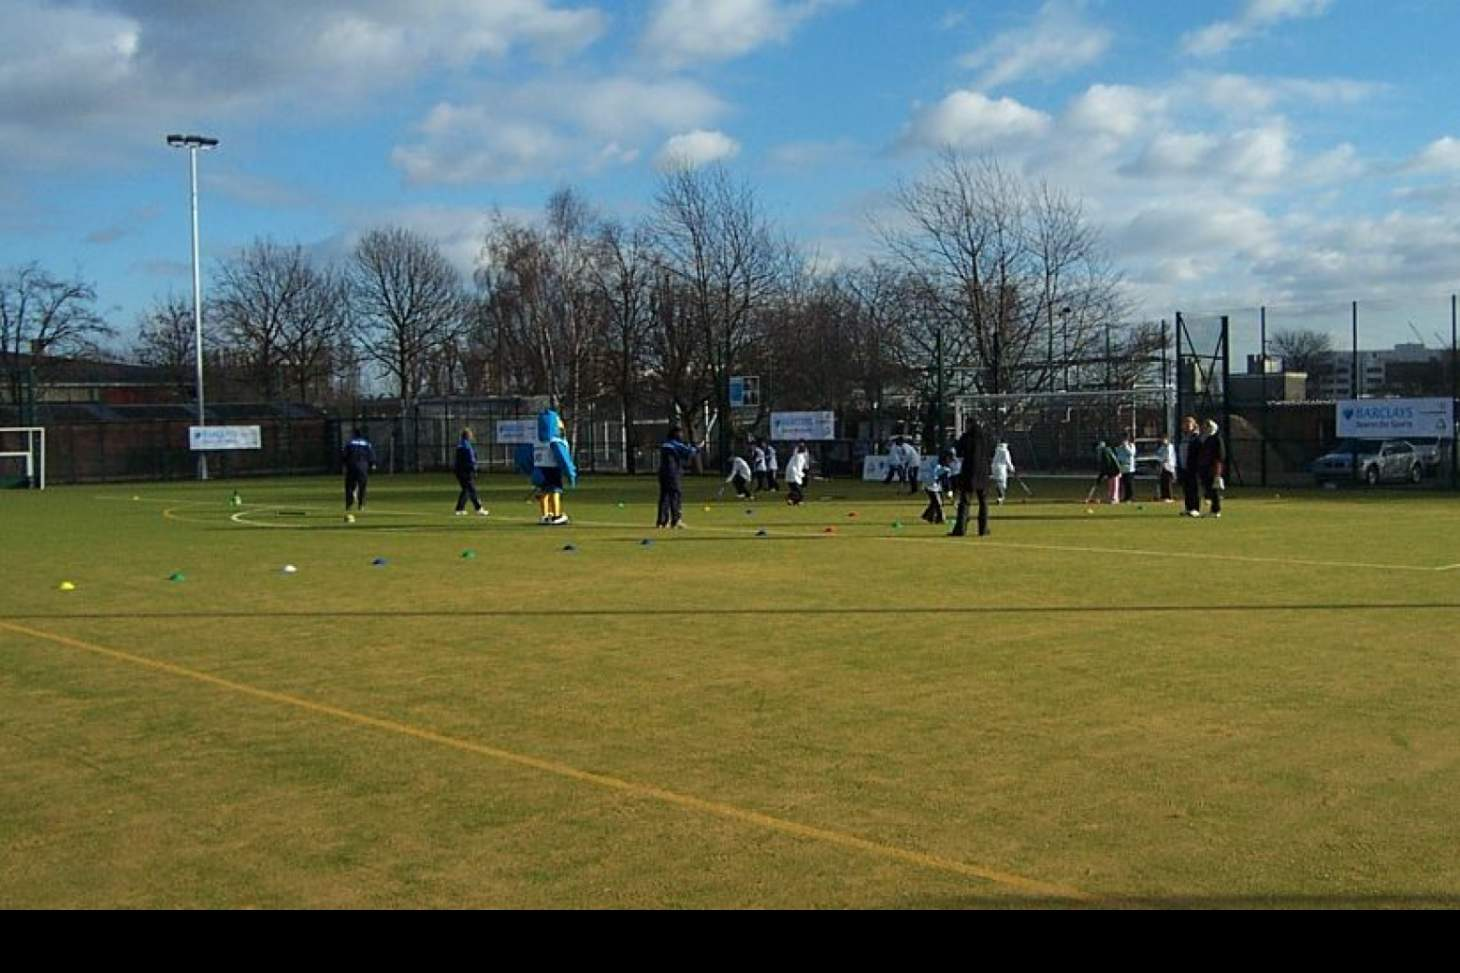 Linford Christie Athletics Track 11 a side | Astroturf football pitch